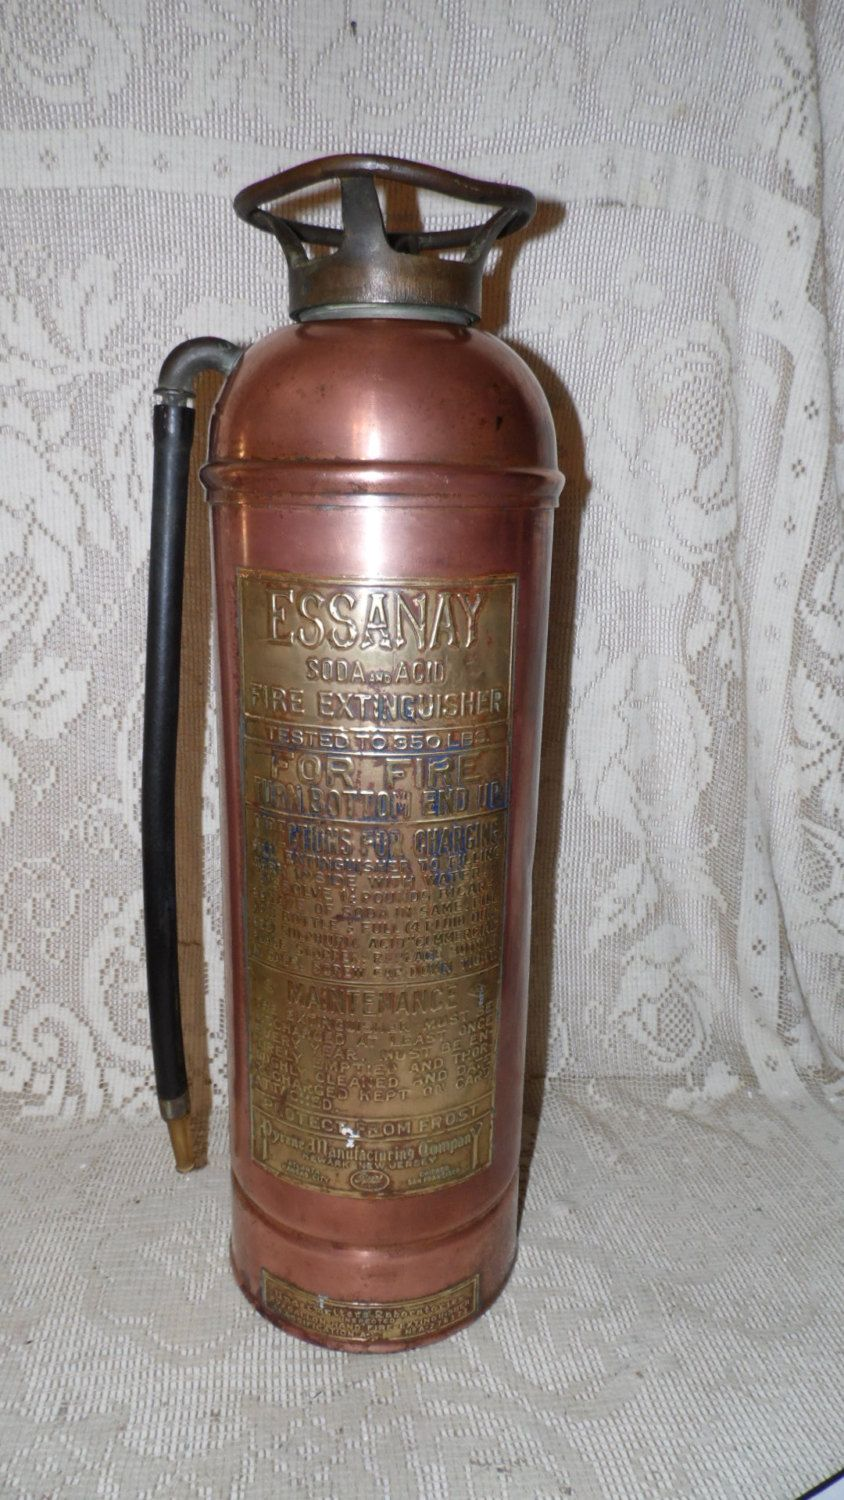 Antique Brass Copper Essanay Soda Acid Fire Extinguisher Pyrene Mfg